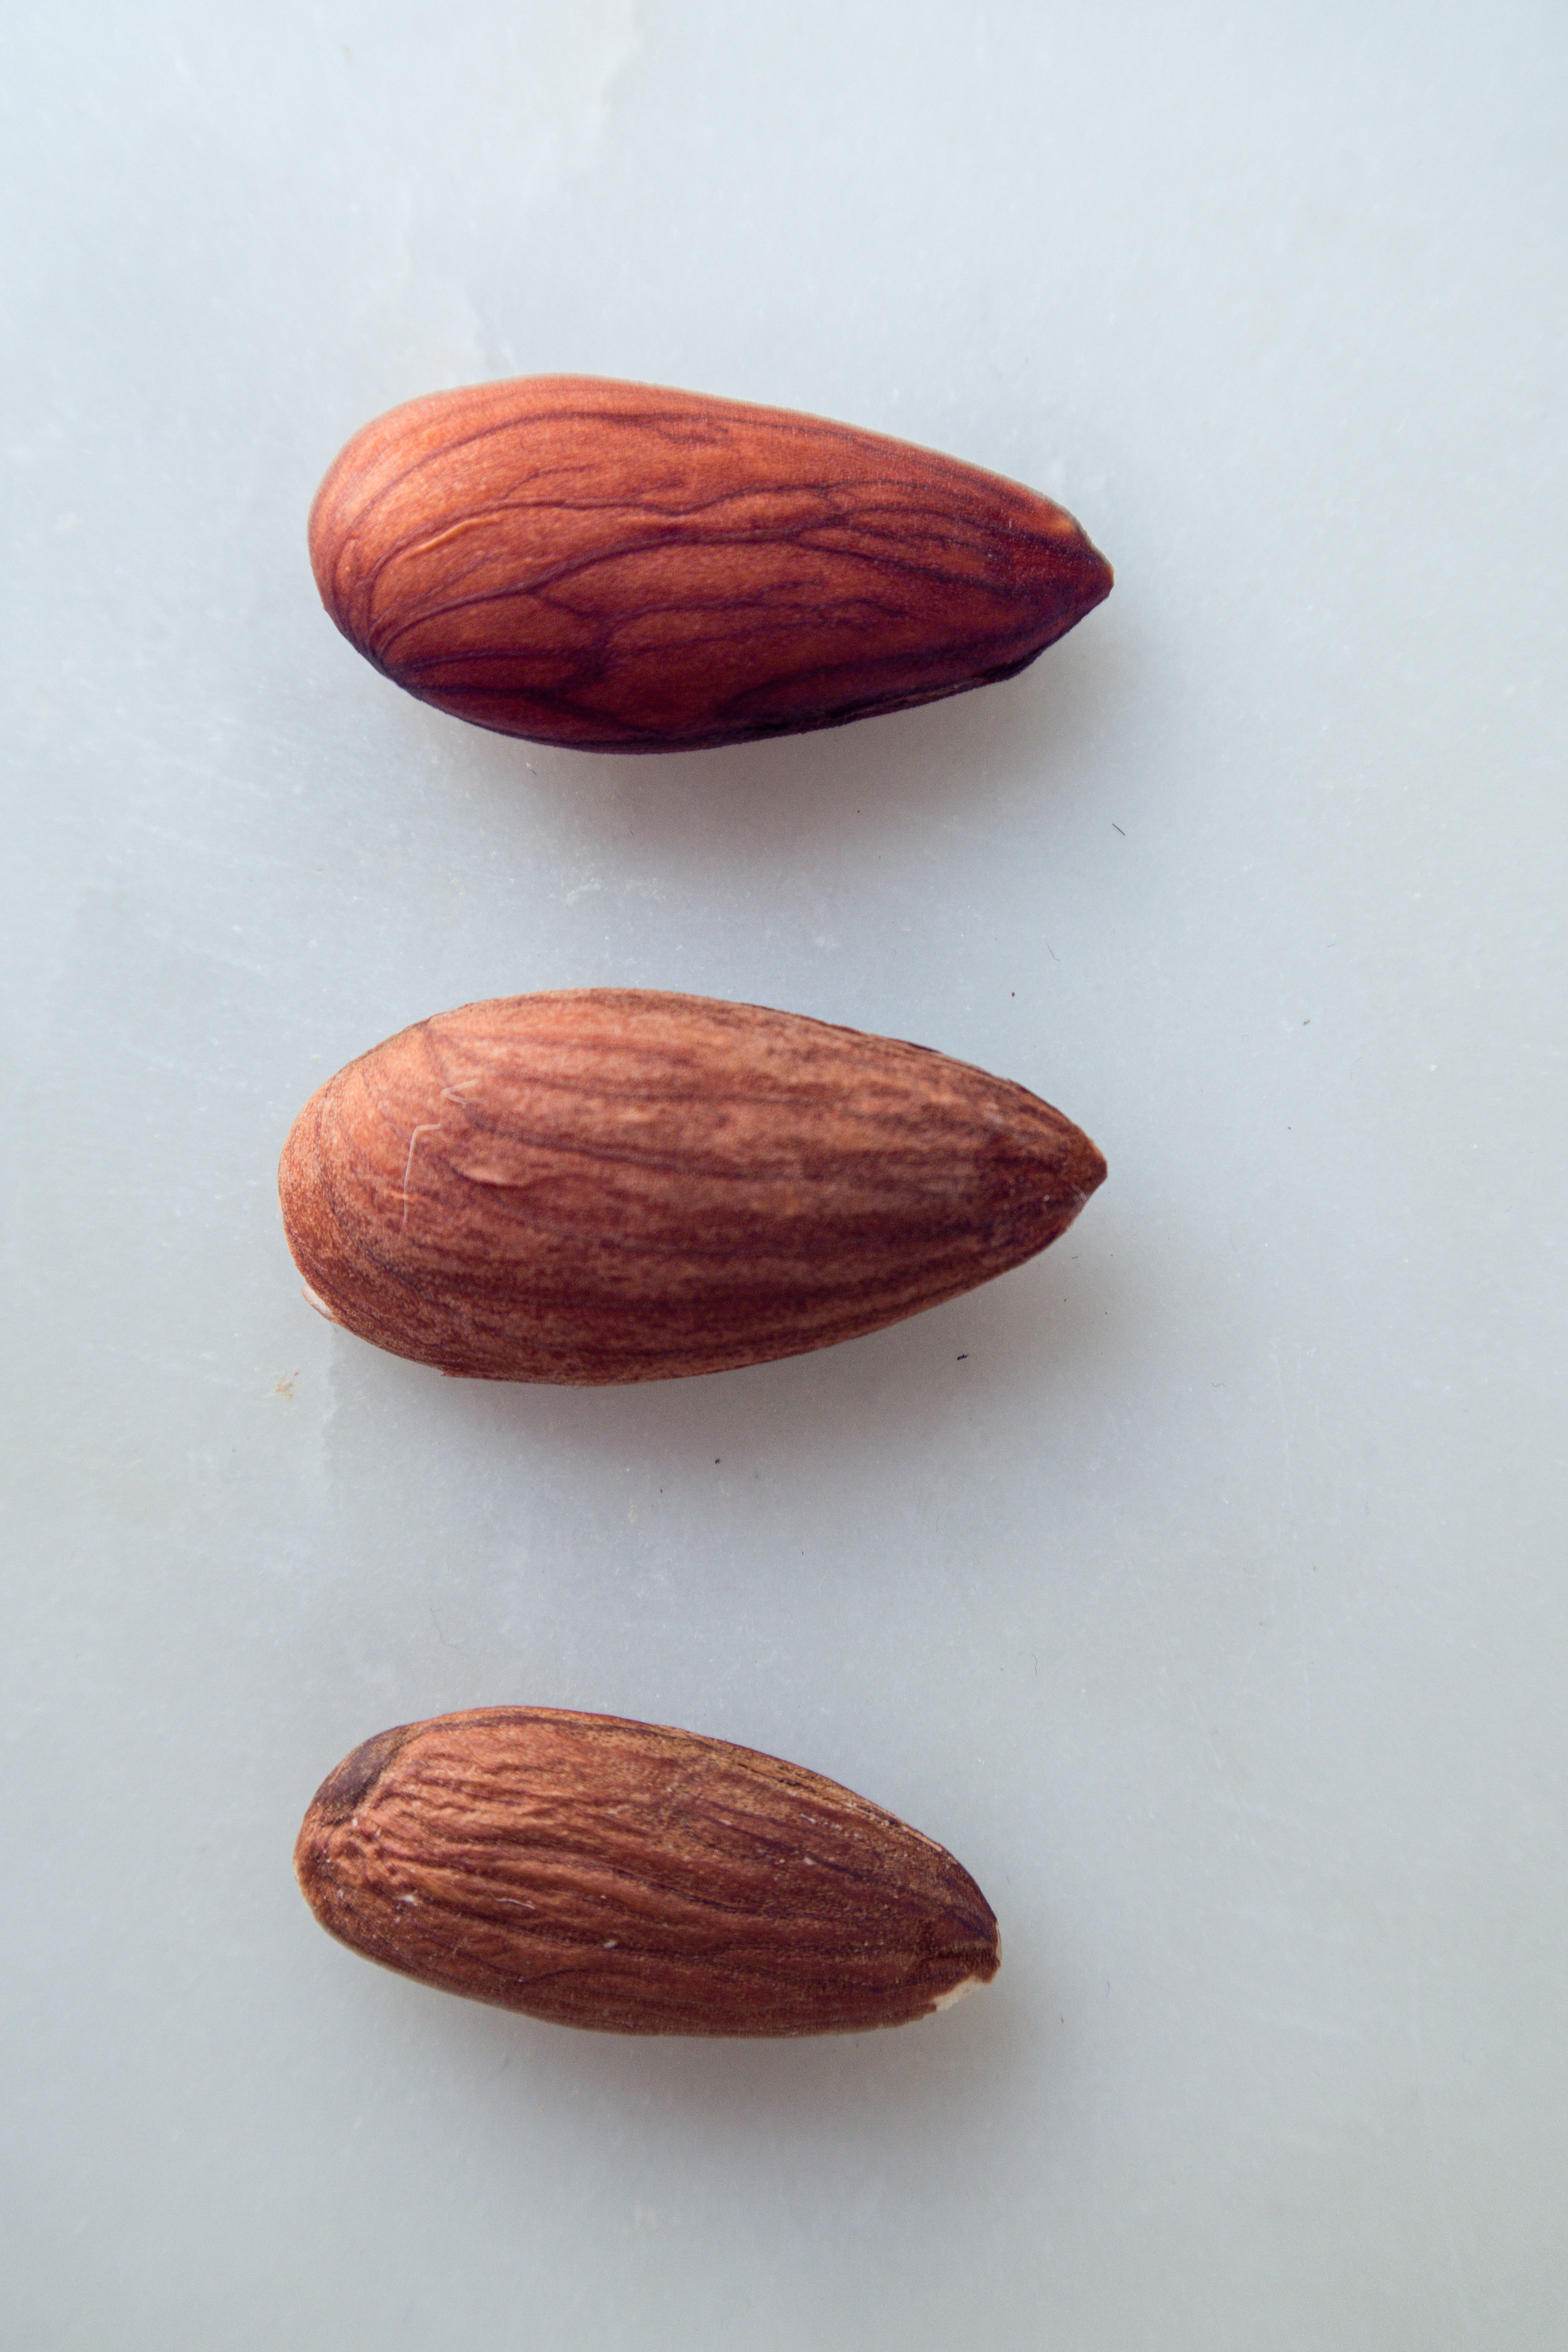 up an activated almond just rinsed, below a dry activated almond and below a normal almond